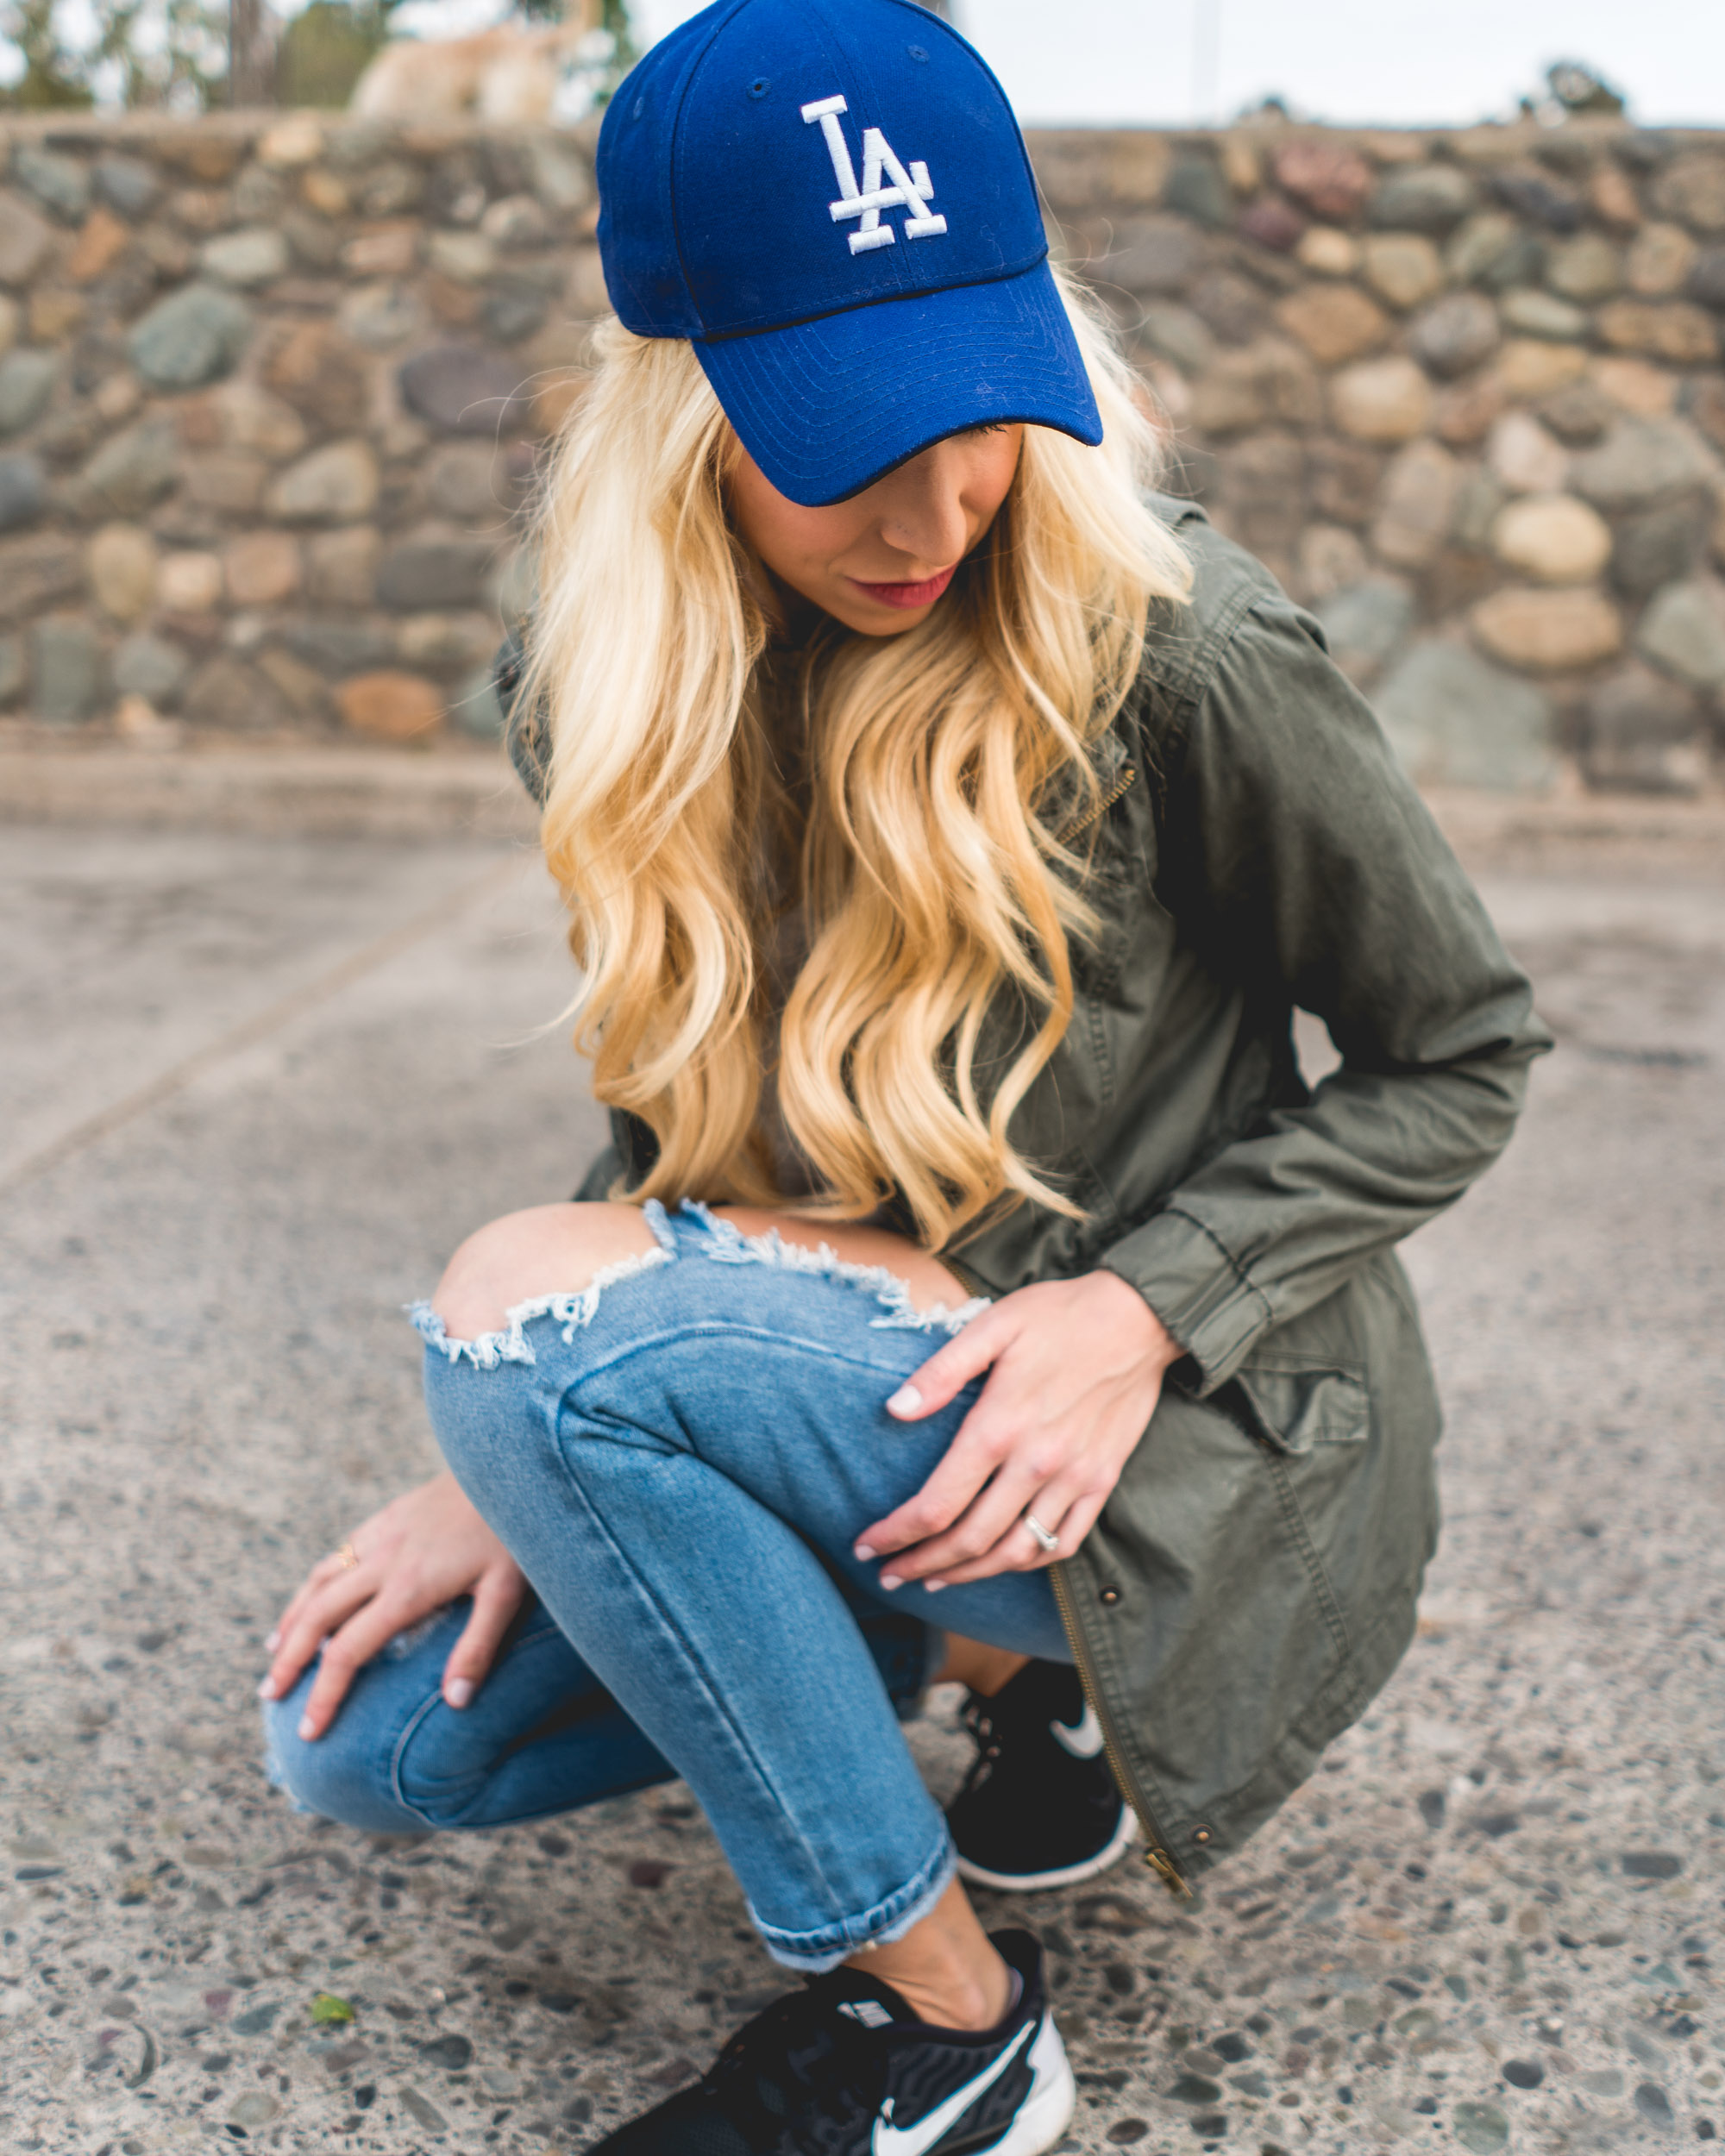 brandi-matthews-rock-rouge-la-hat-11